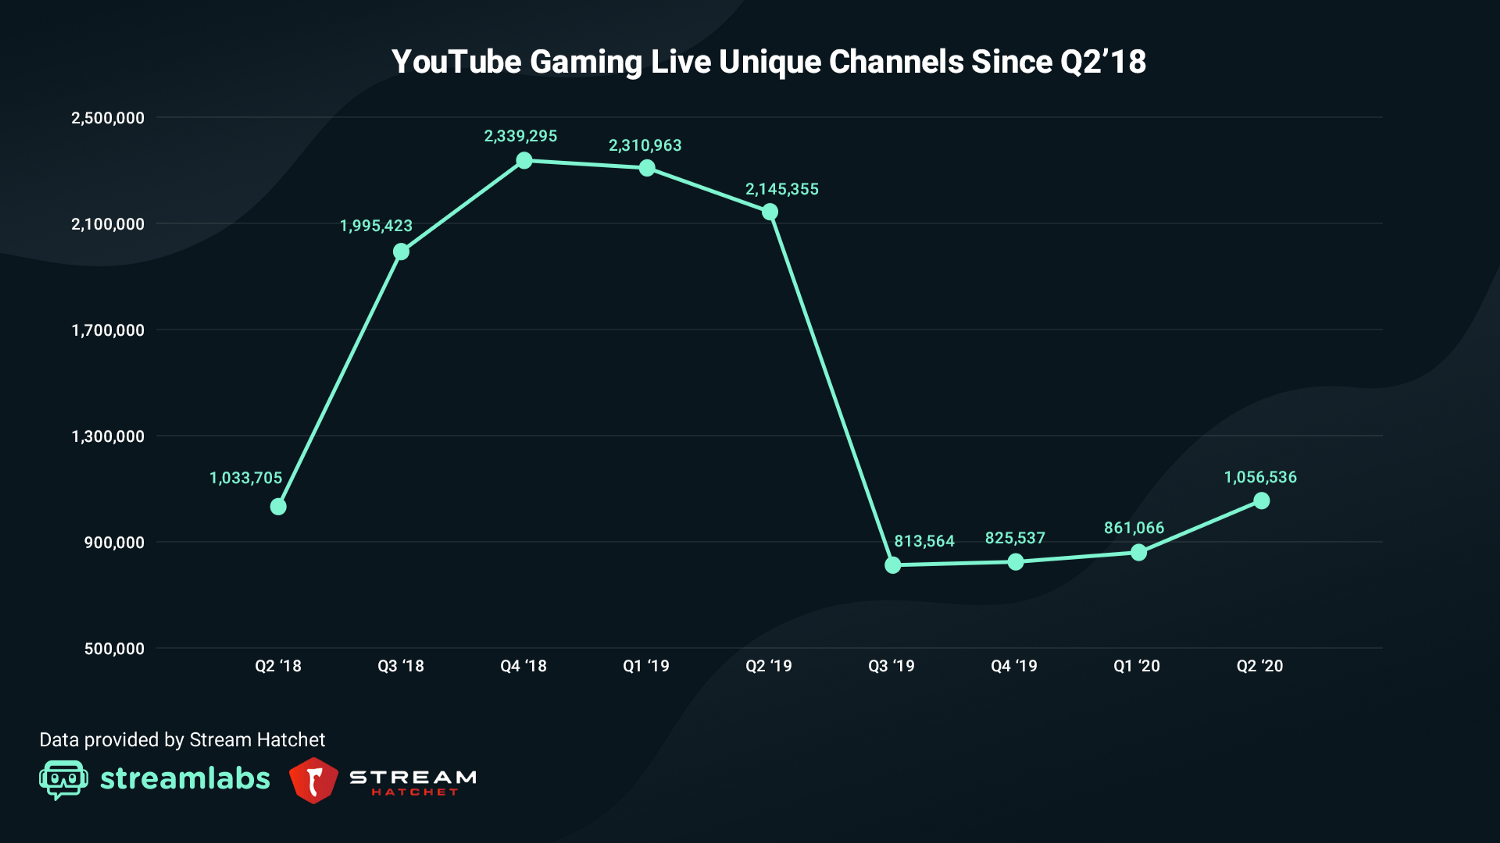 YouTube gaming total channels by quarter